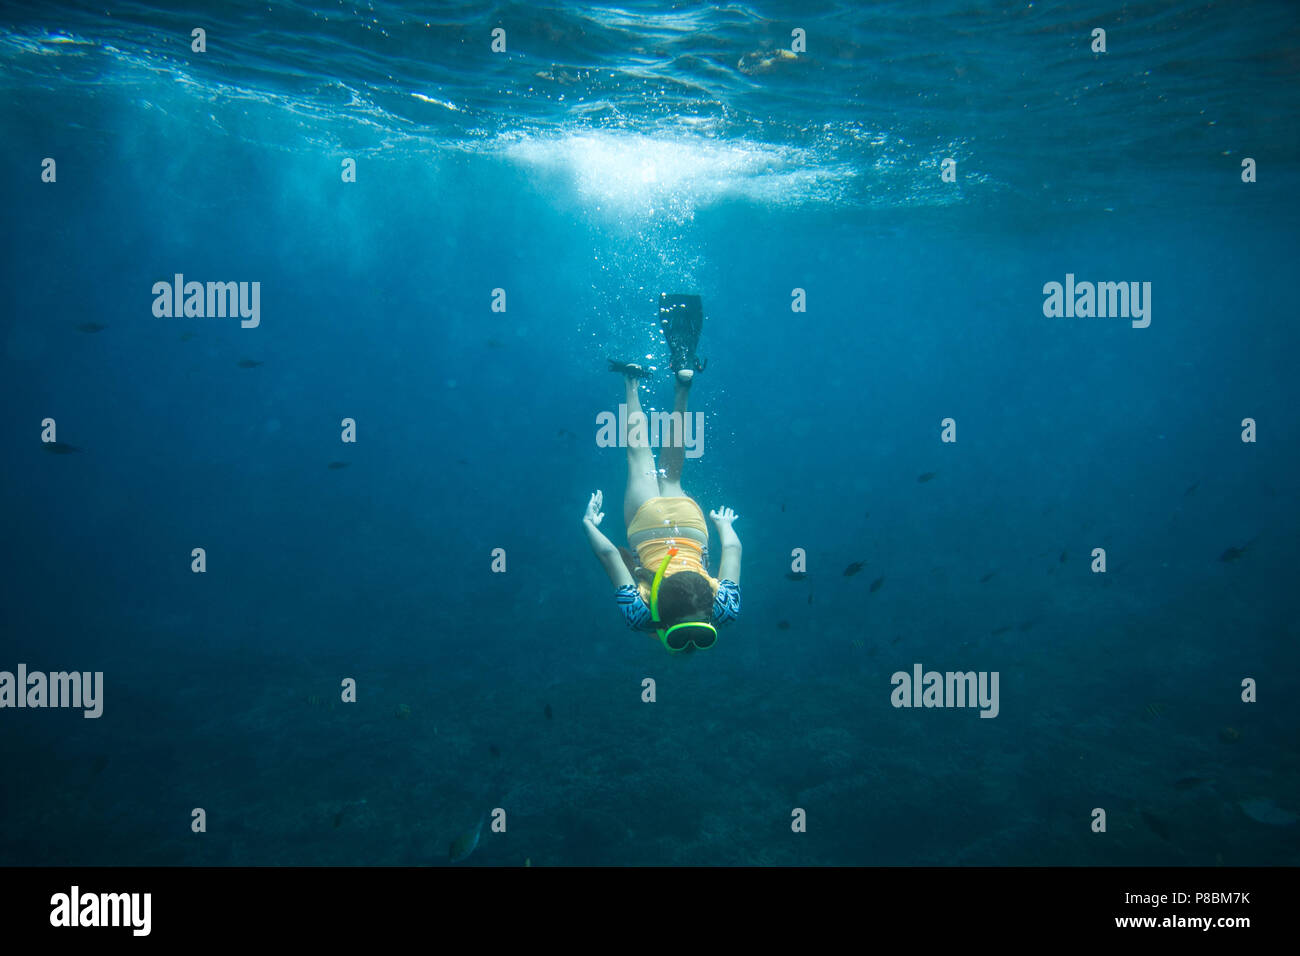 underwater photo of woman in fins, diving mask and snorkel diving alone in ocean Stock Photo